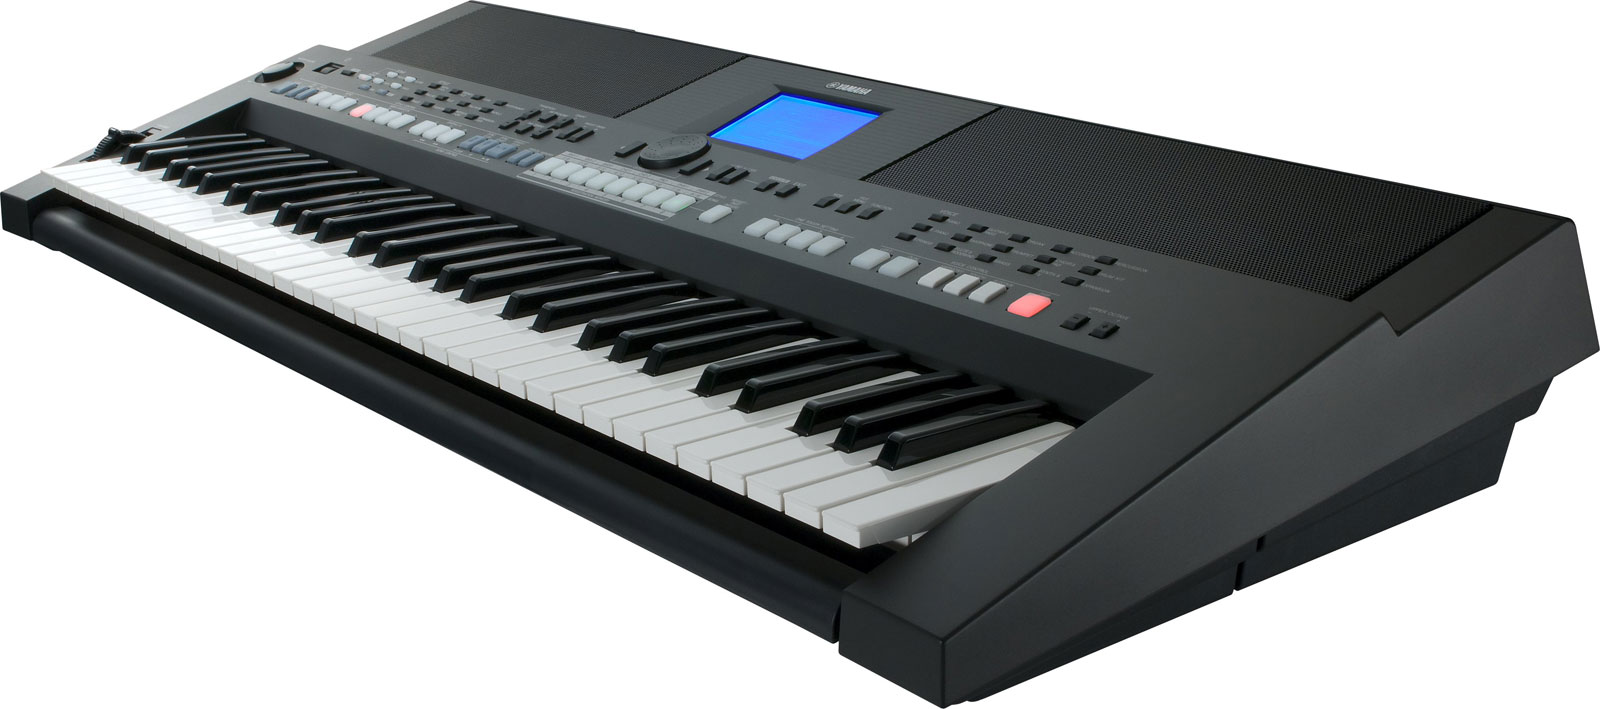 Namm yamaha psr s650 news audiofanzine for Yamaha professional keyboard price